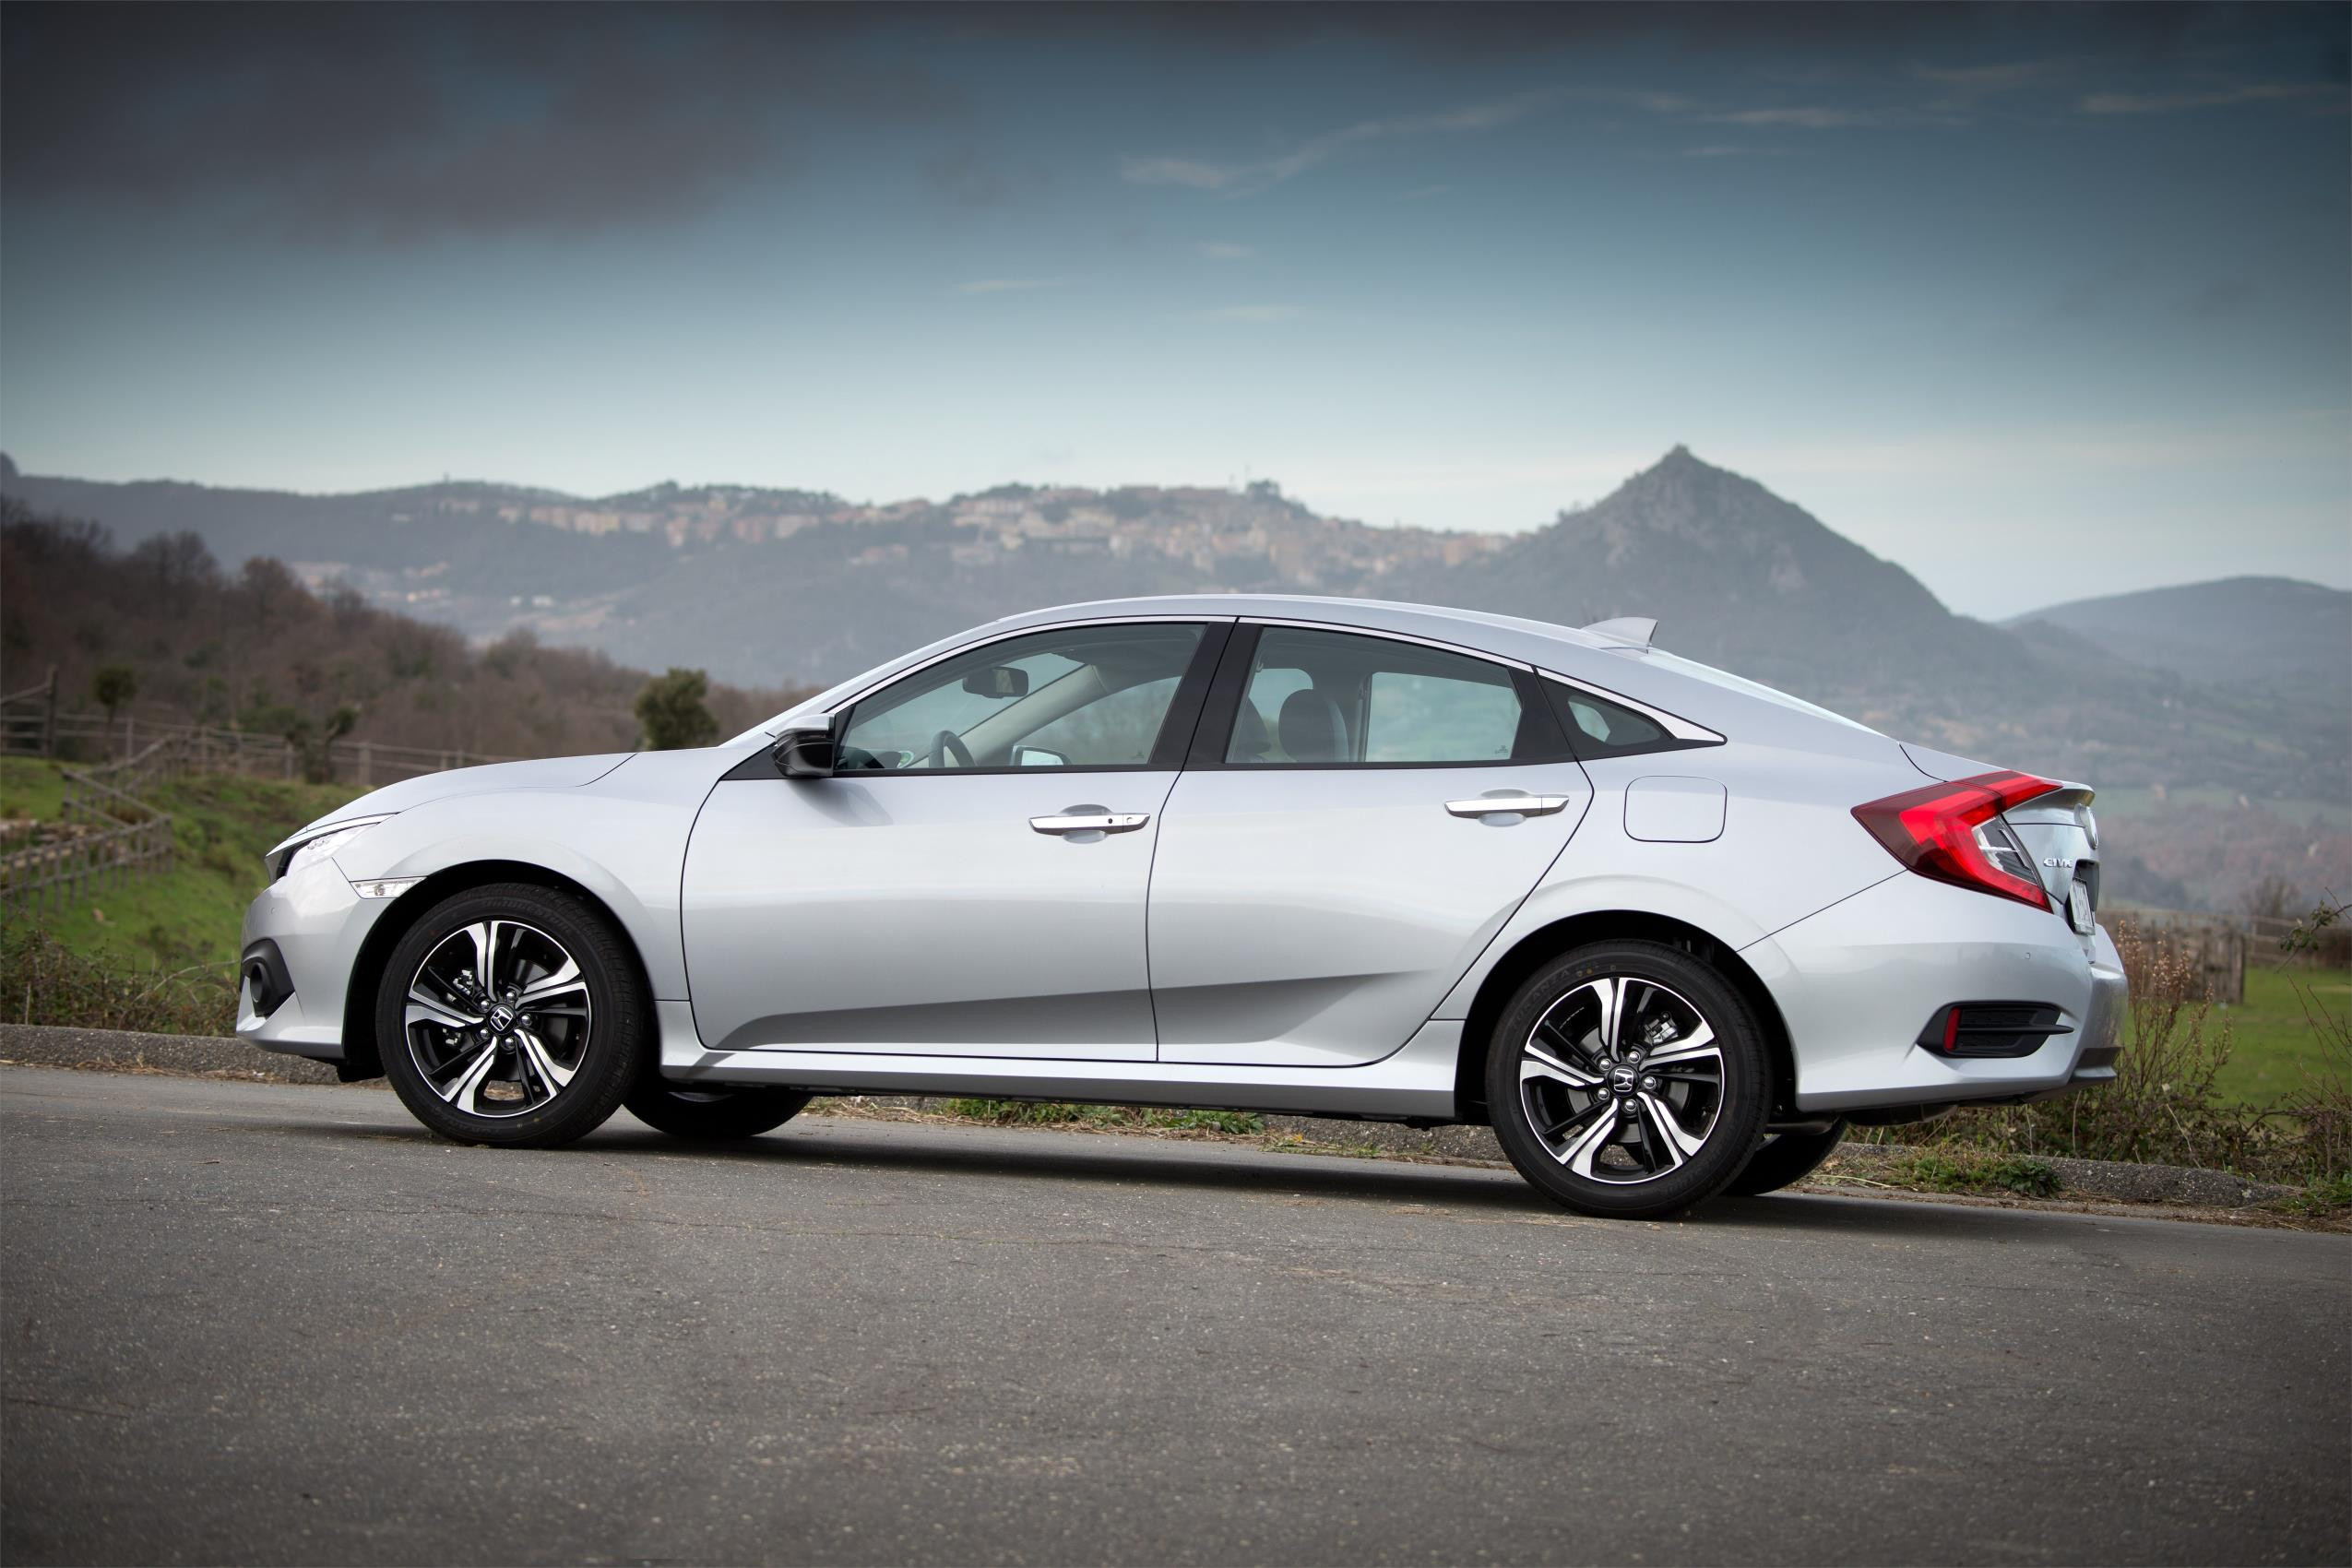 Silver Honda Civic Saloon parked side on with mountain scenery behind